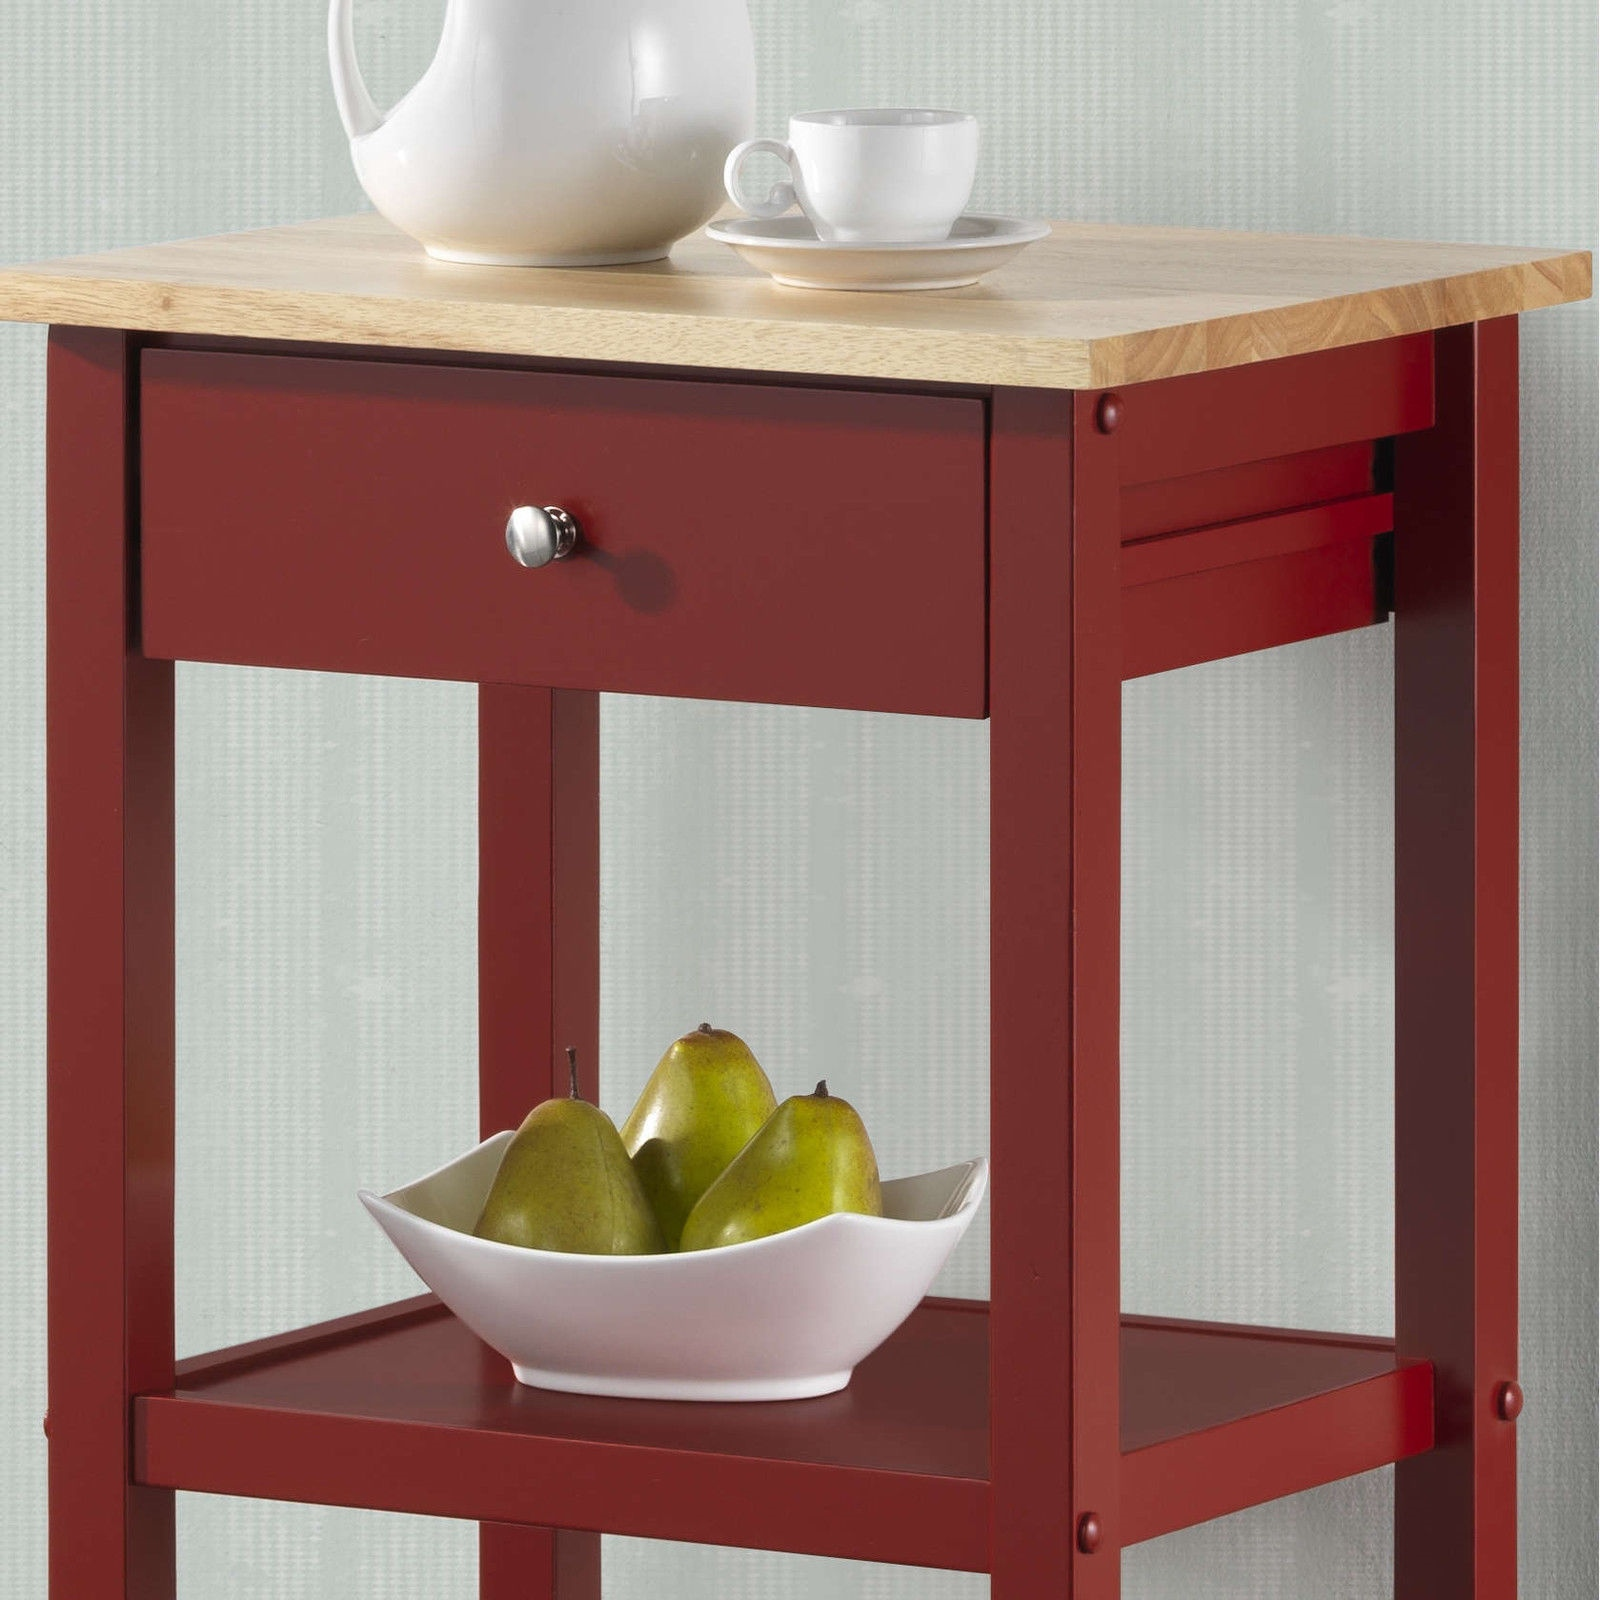 White Kitchen Shelf: NEW Red Black White Wooden Rolling Kitchen Cart Island